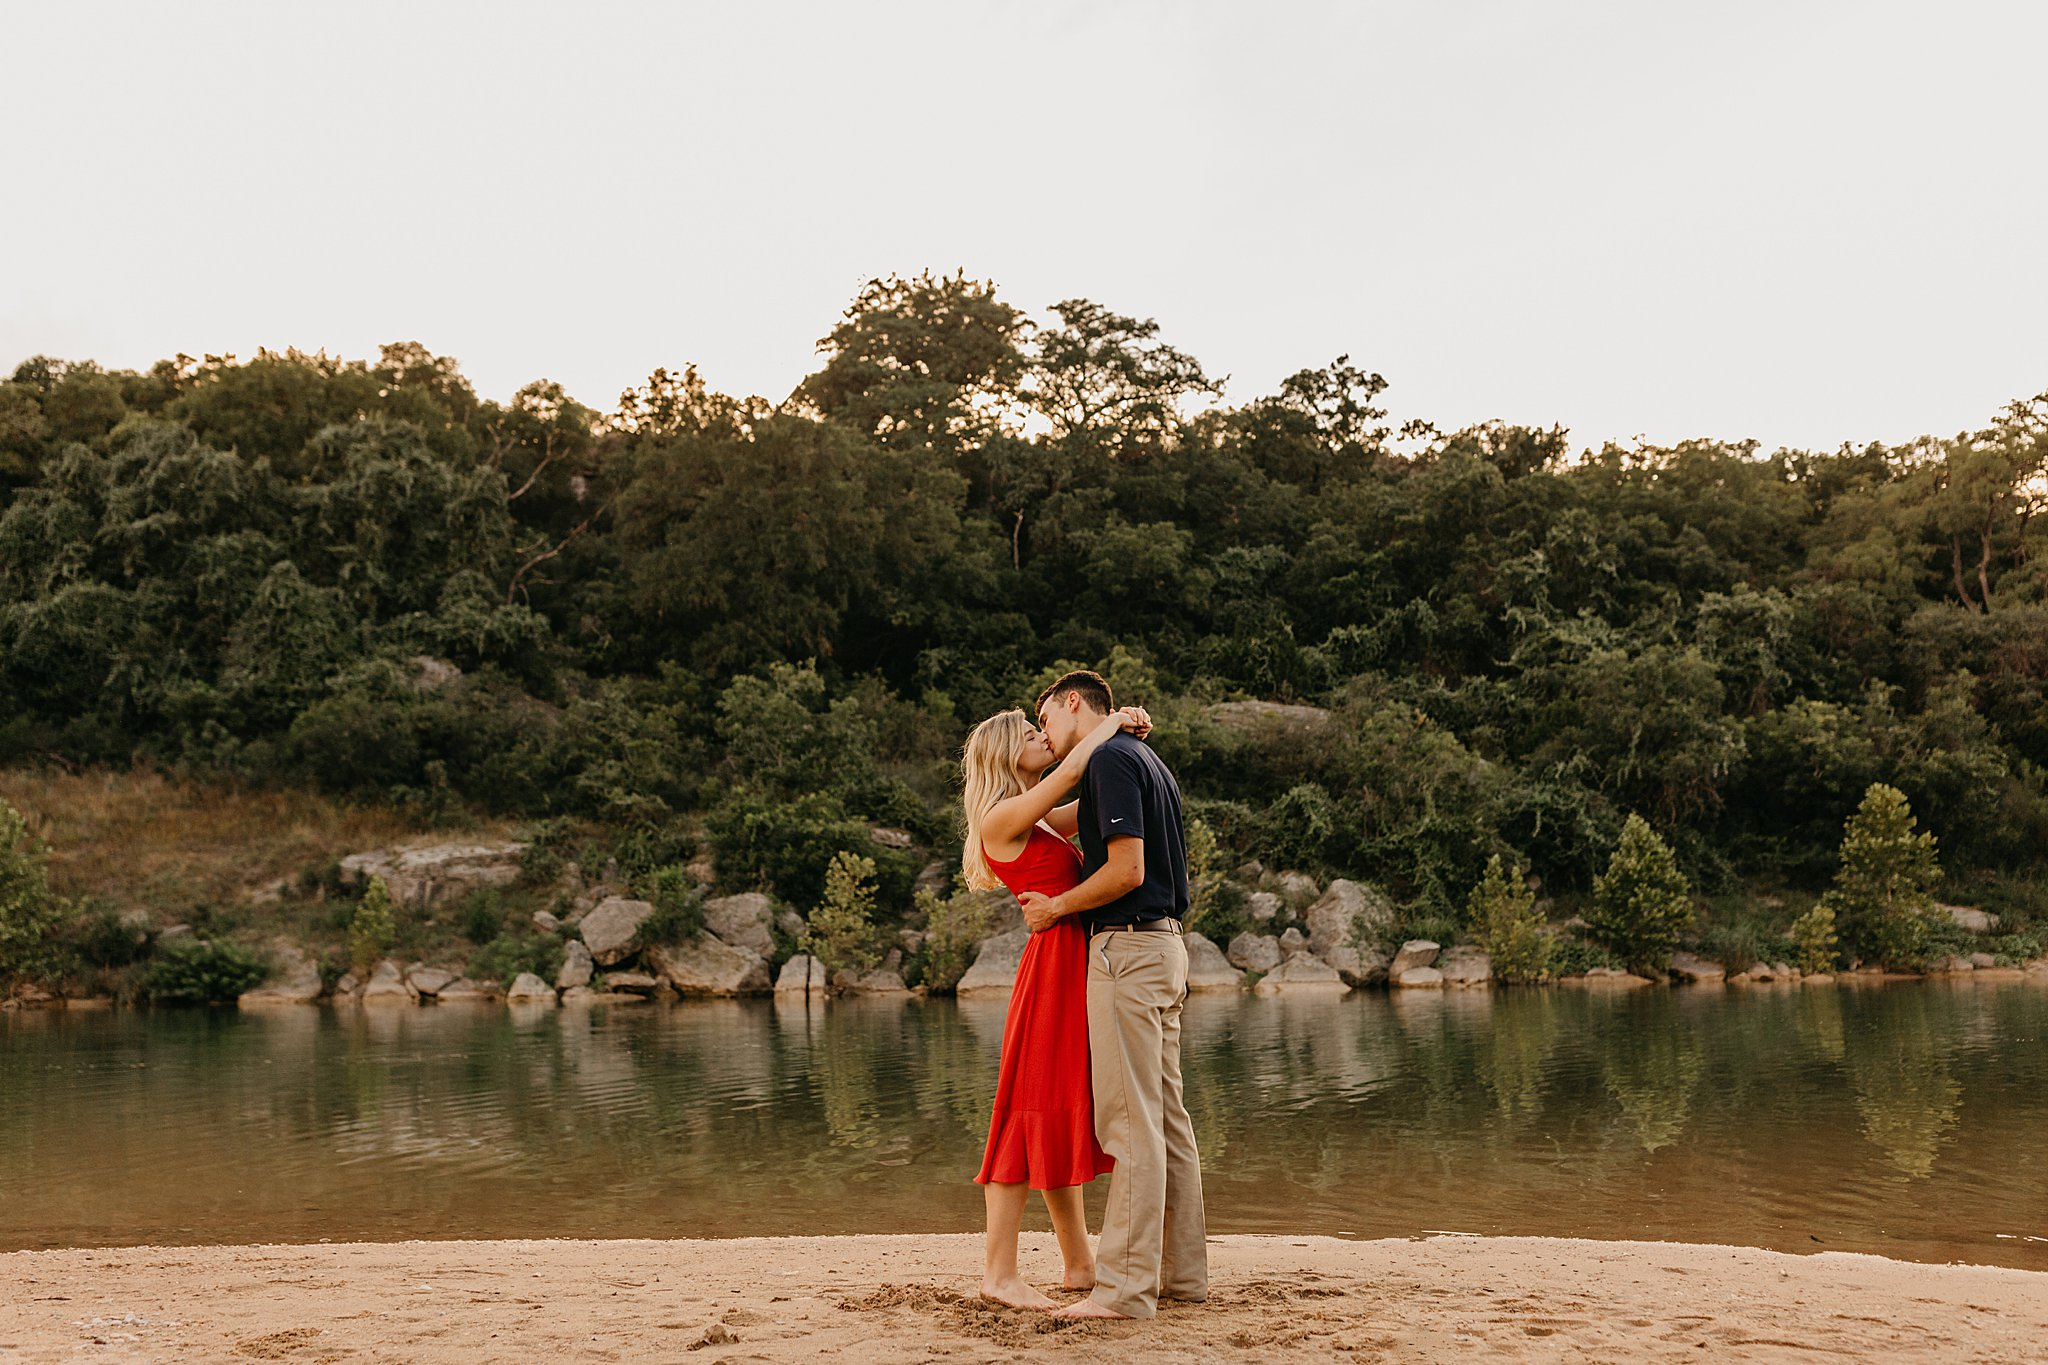 Wilderlove Co_Wedding Photographer_Dripping Springs Photography_Adventure Engagemenet_Rock Climbing Engagement_Hill Country Photographer_North Texas Photographer_0026.jpg